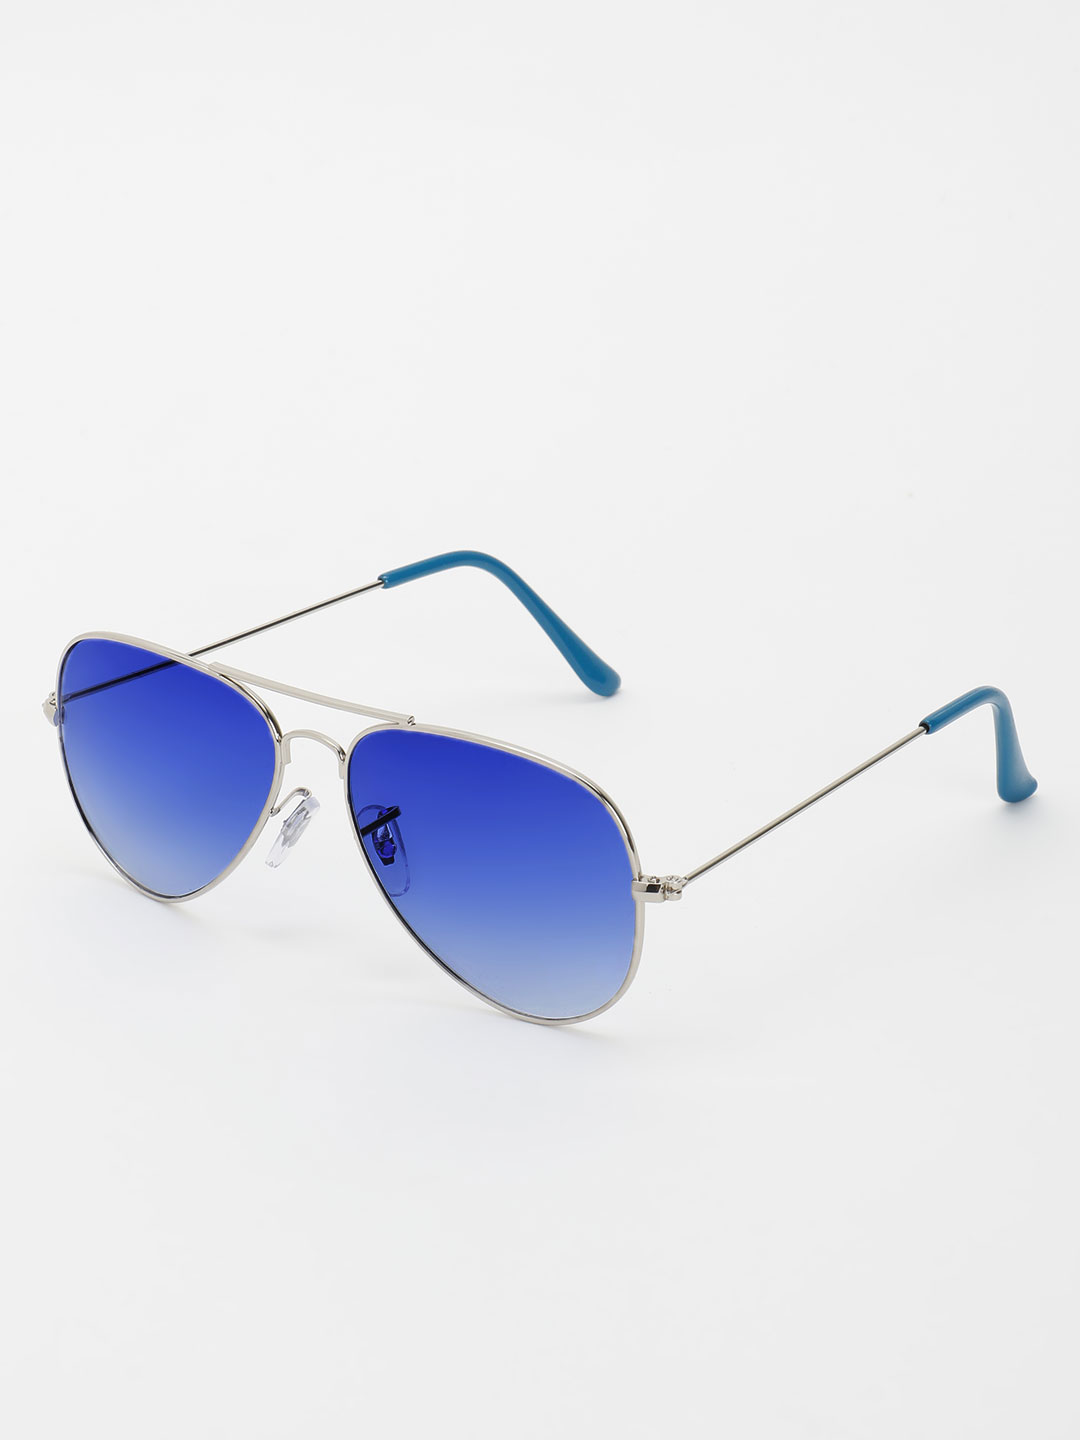 KOOVS Blue Pilot Sunglasses 1